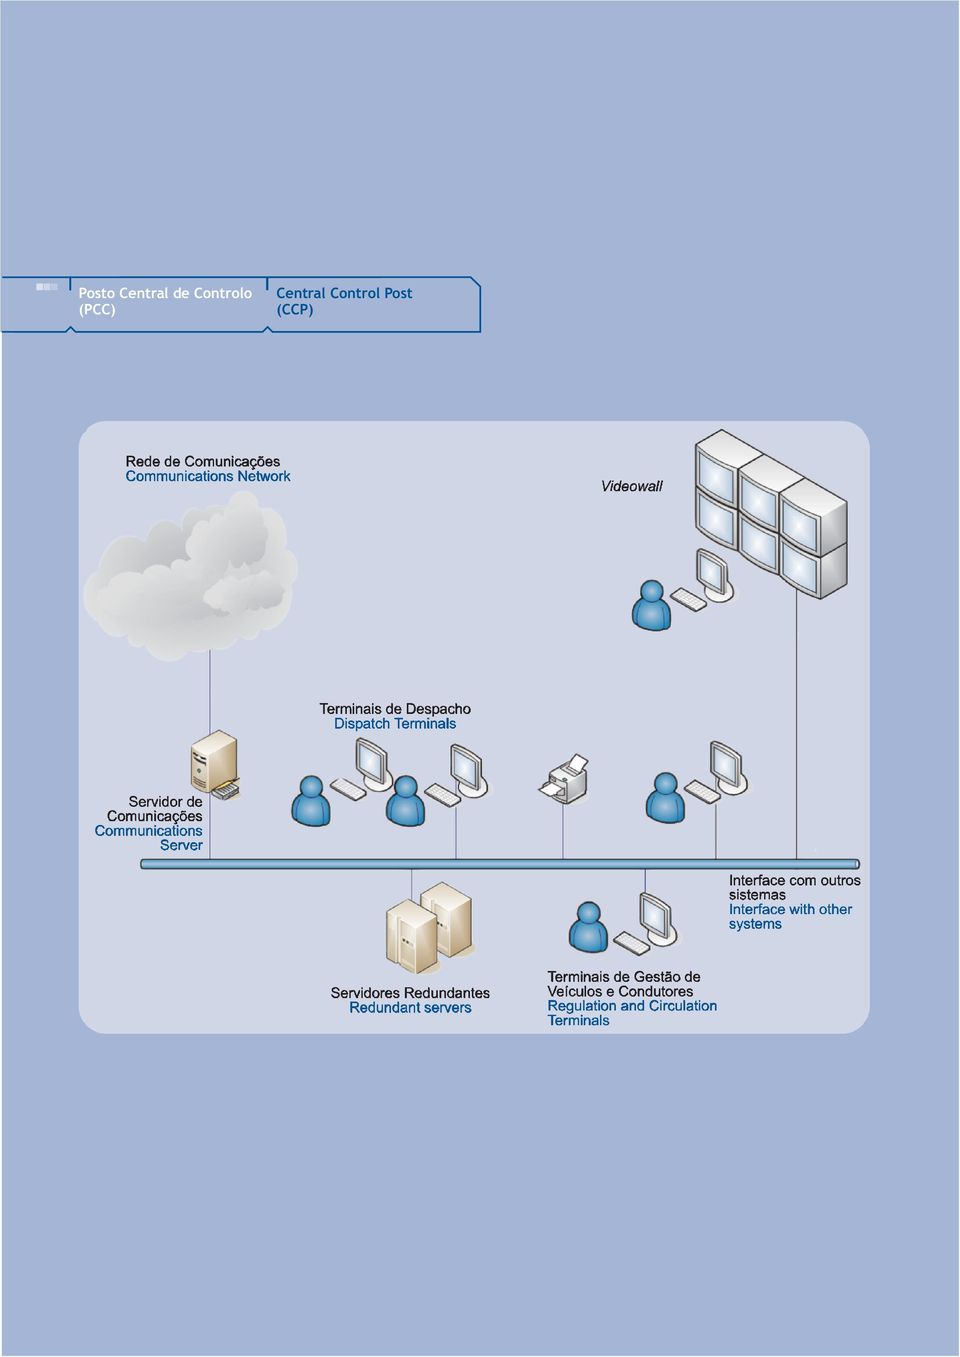 Communications Server Interface com outros sistemas Interface with other systems Servidores